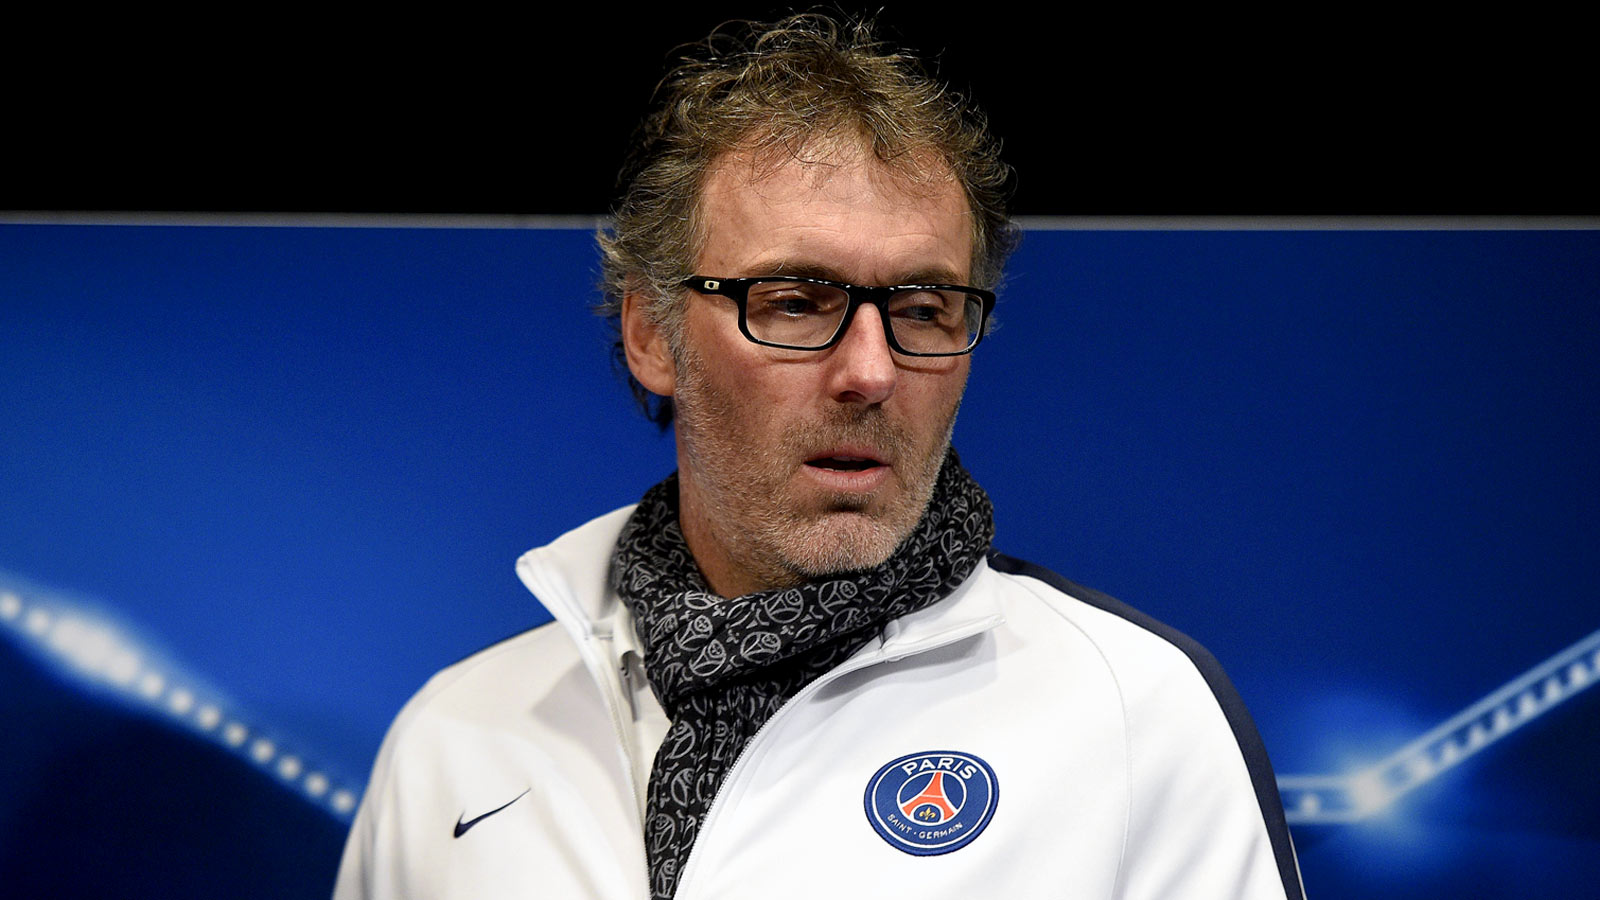 PSG coach Blanc reacted 'very badly' to Aurier outburst